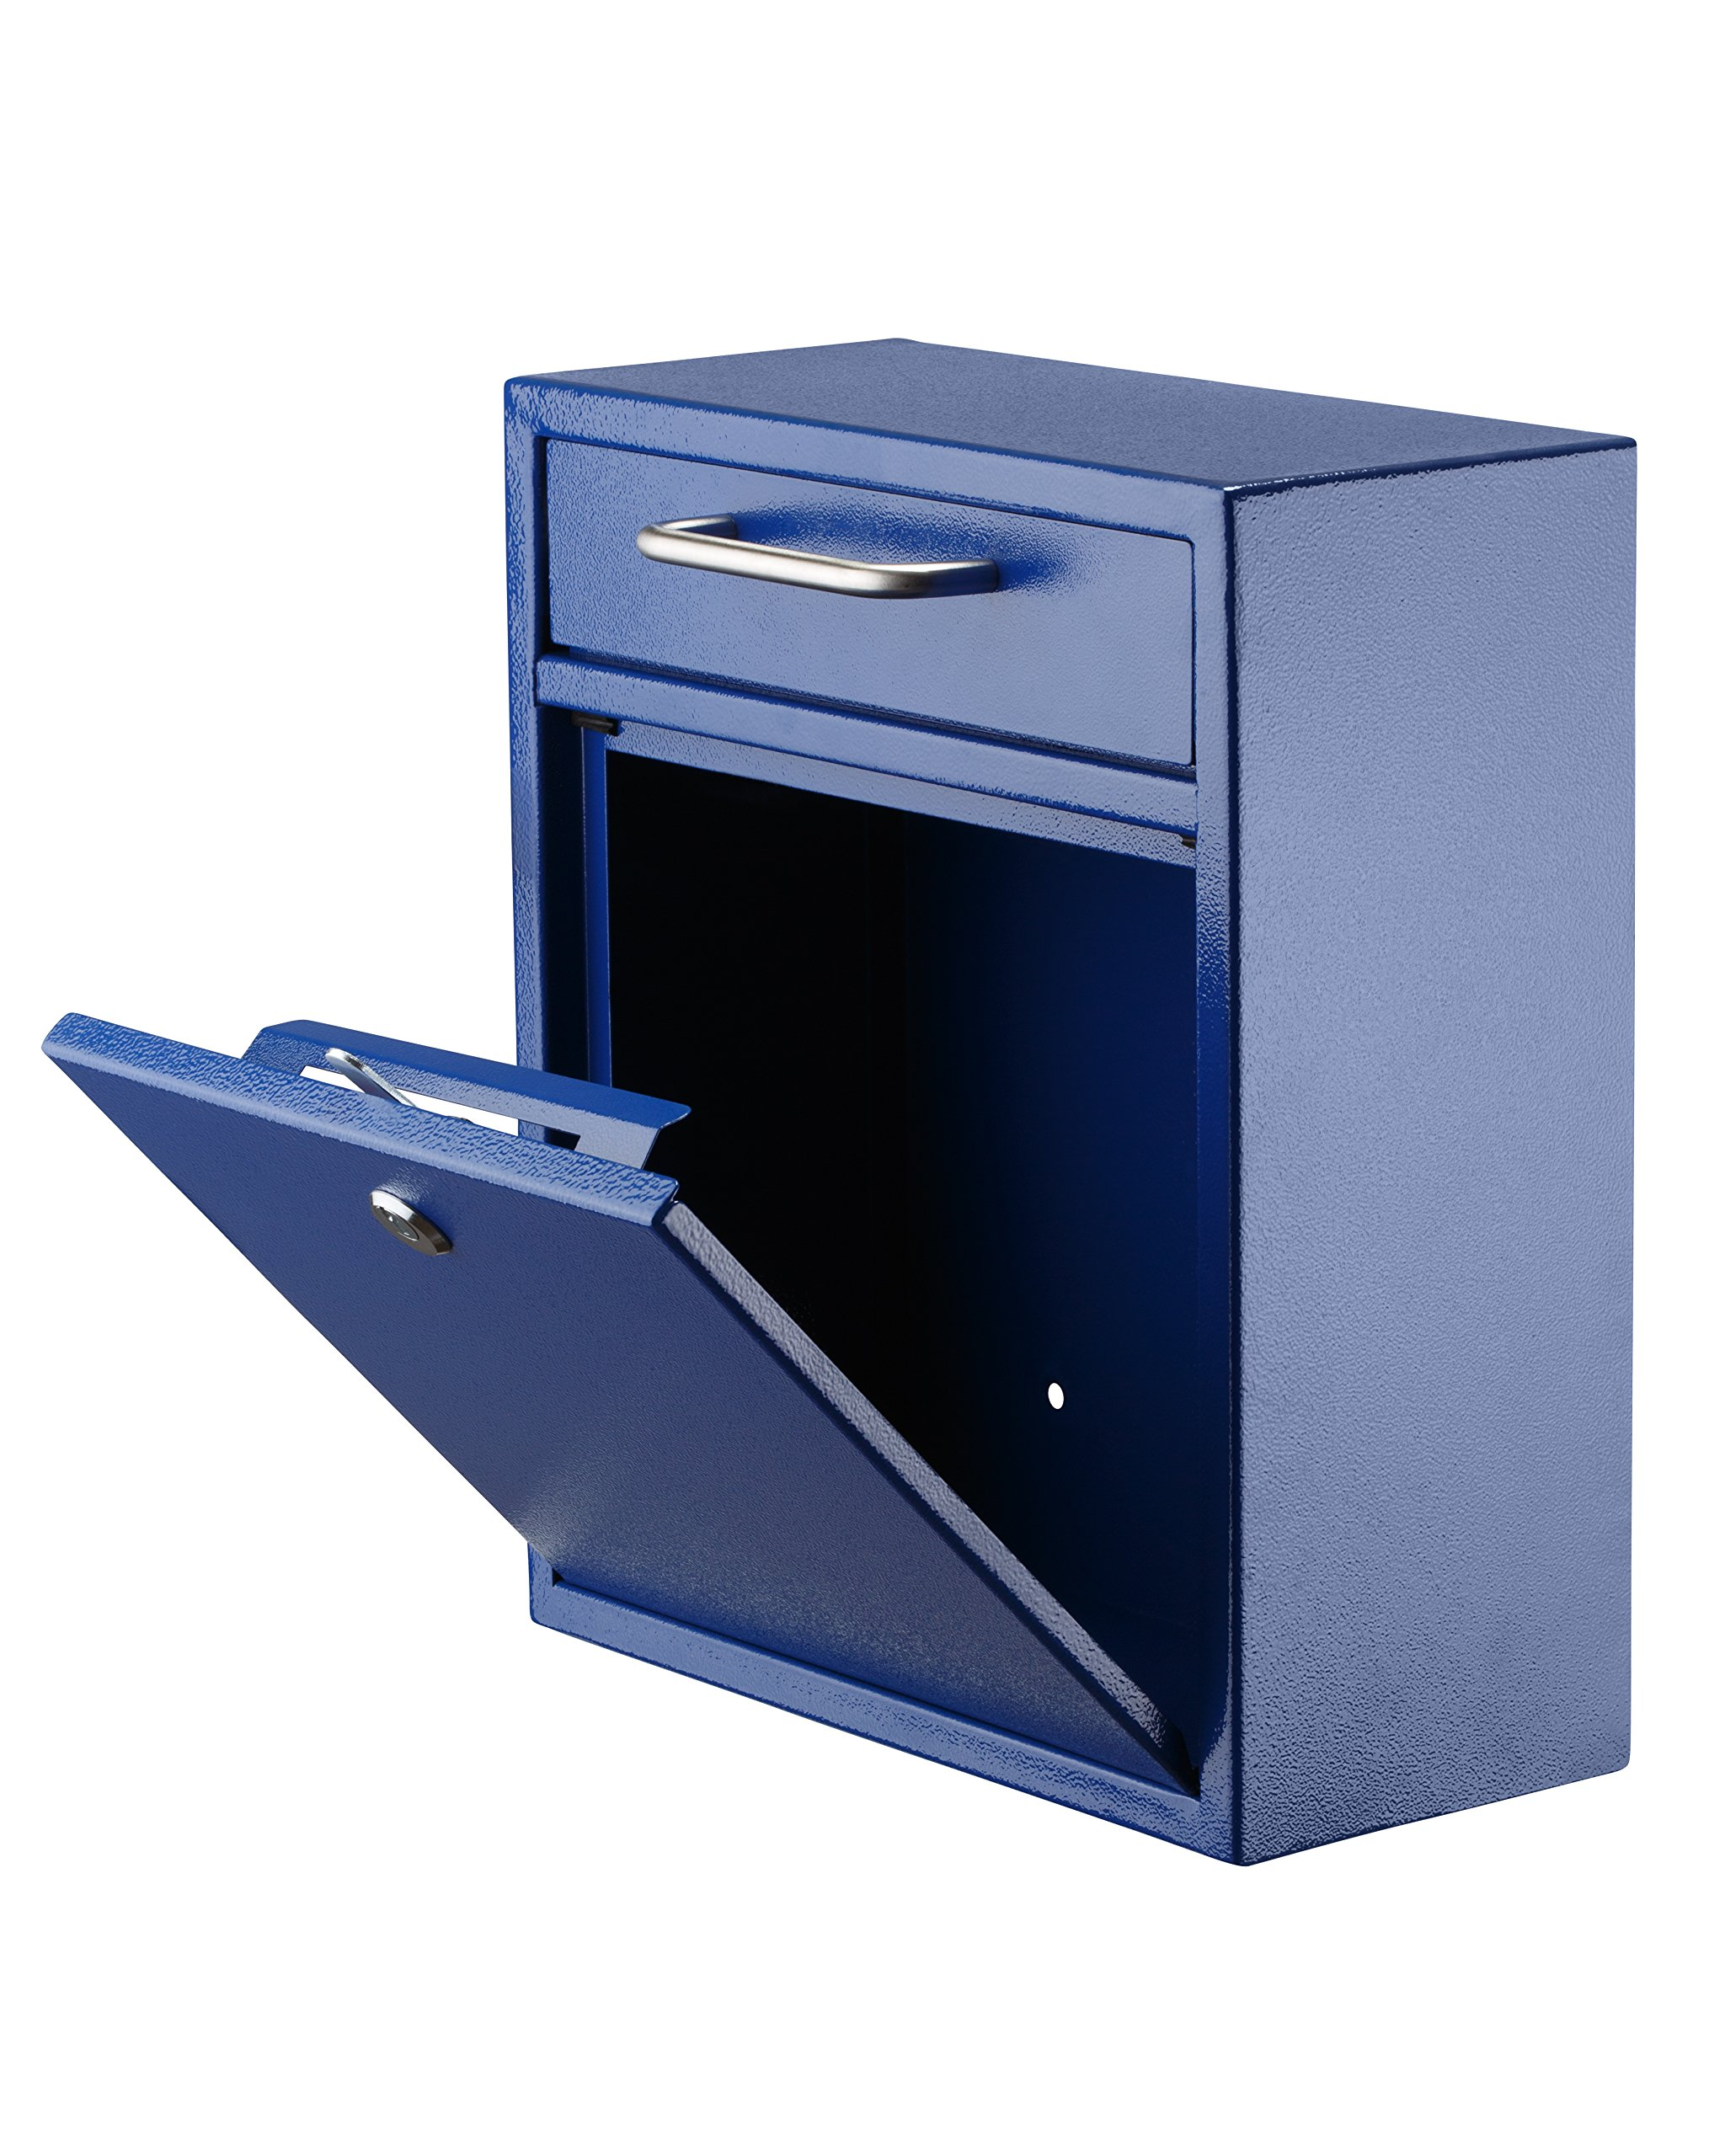 AdirOffice Locking Drop Box - Wall Mounted Mailbox - (Medium, Blue) by Adir Corp. (Image #2)